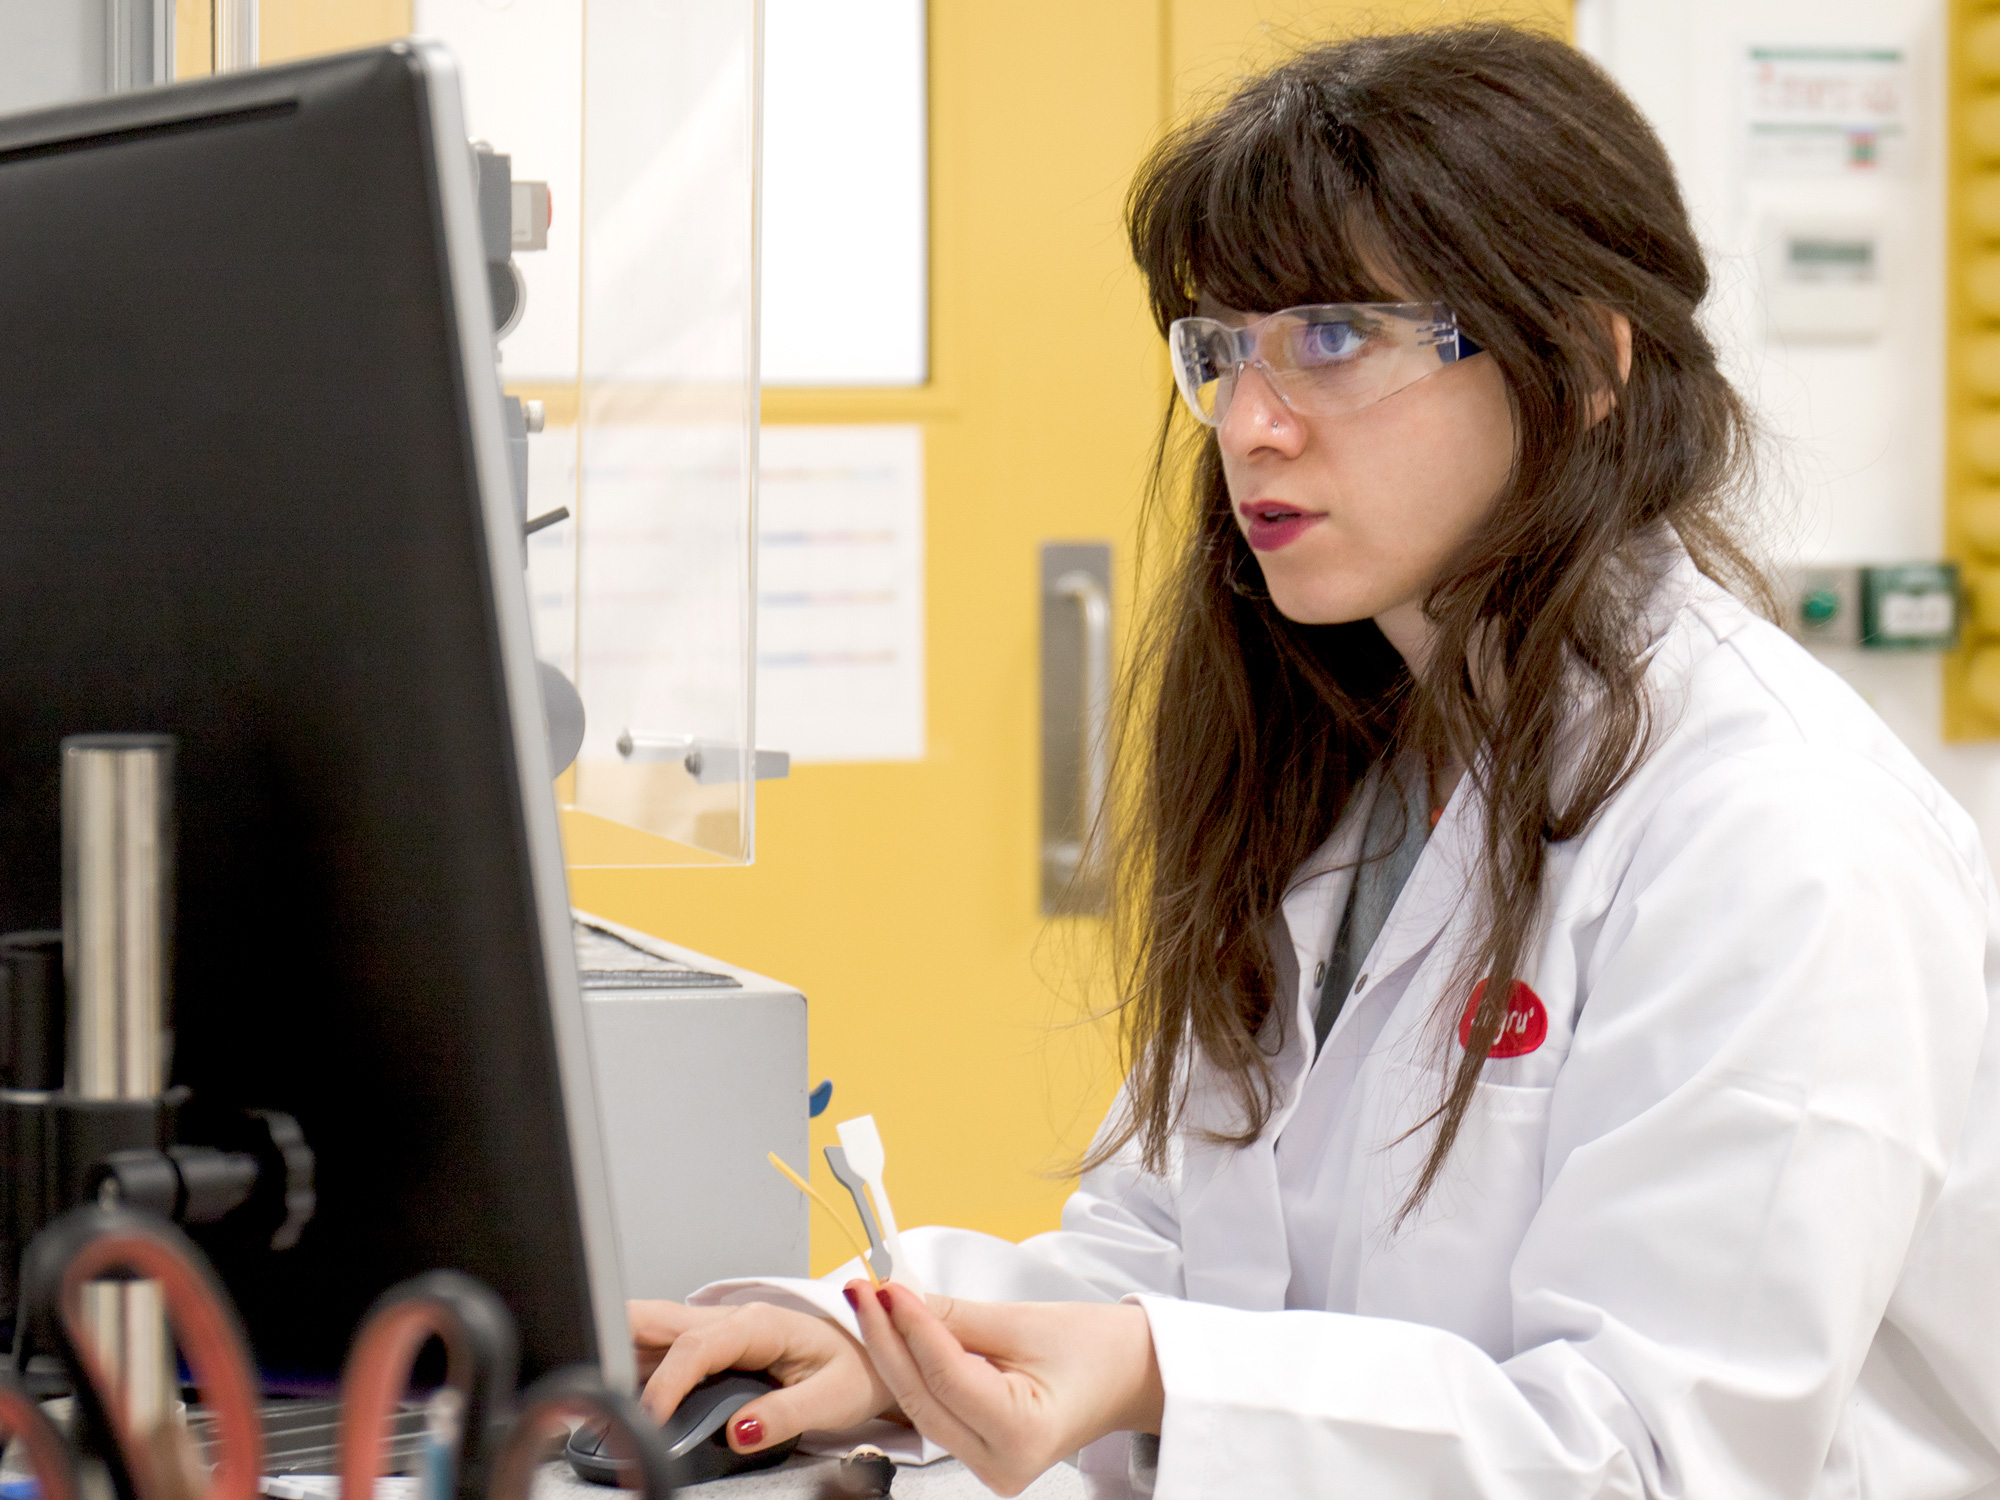 vivian working on a computer in the sugru lab